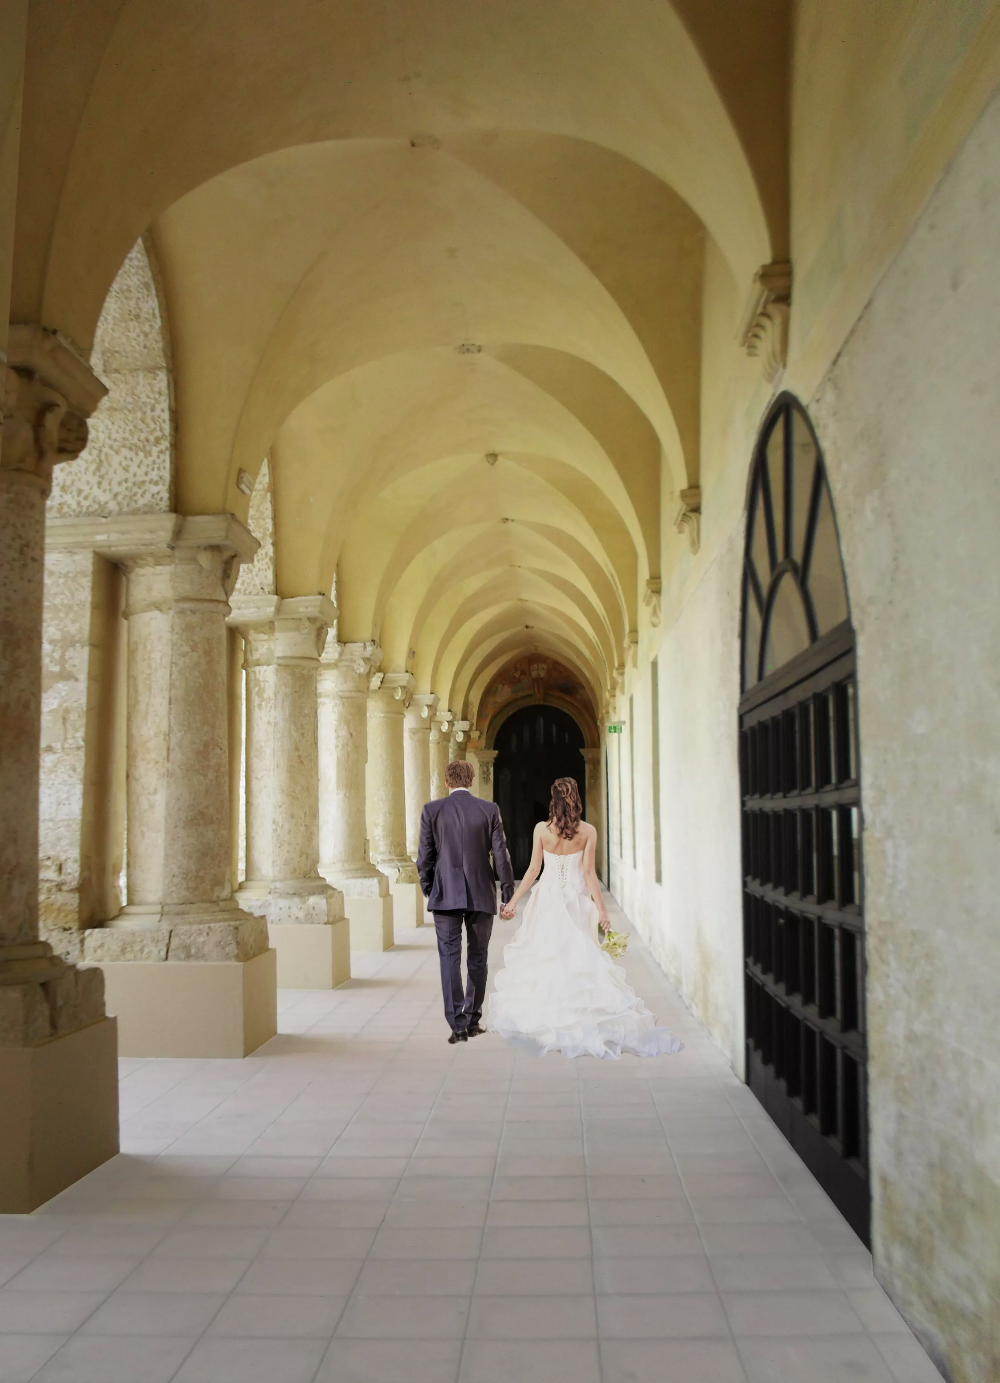 PUGLIA WEDDING VENUES London Wedding Planner Italy